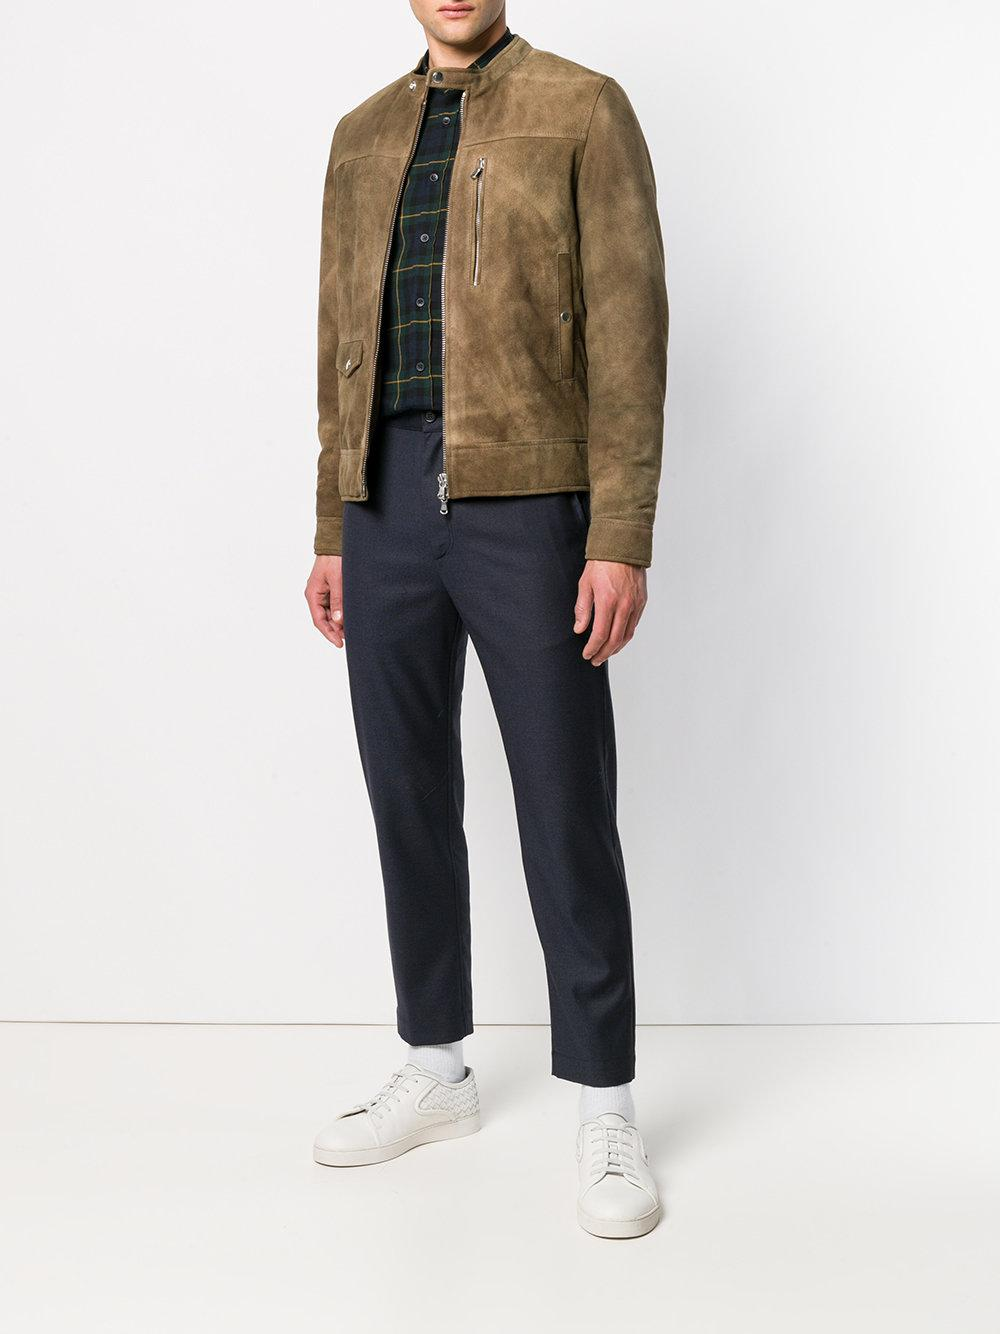 Mauro Grifoni Brushed Leather Jacket in Brown for Men